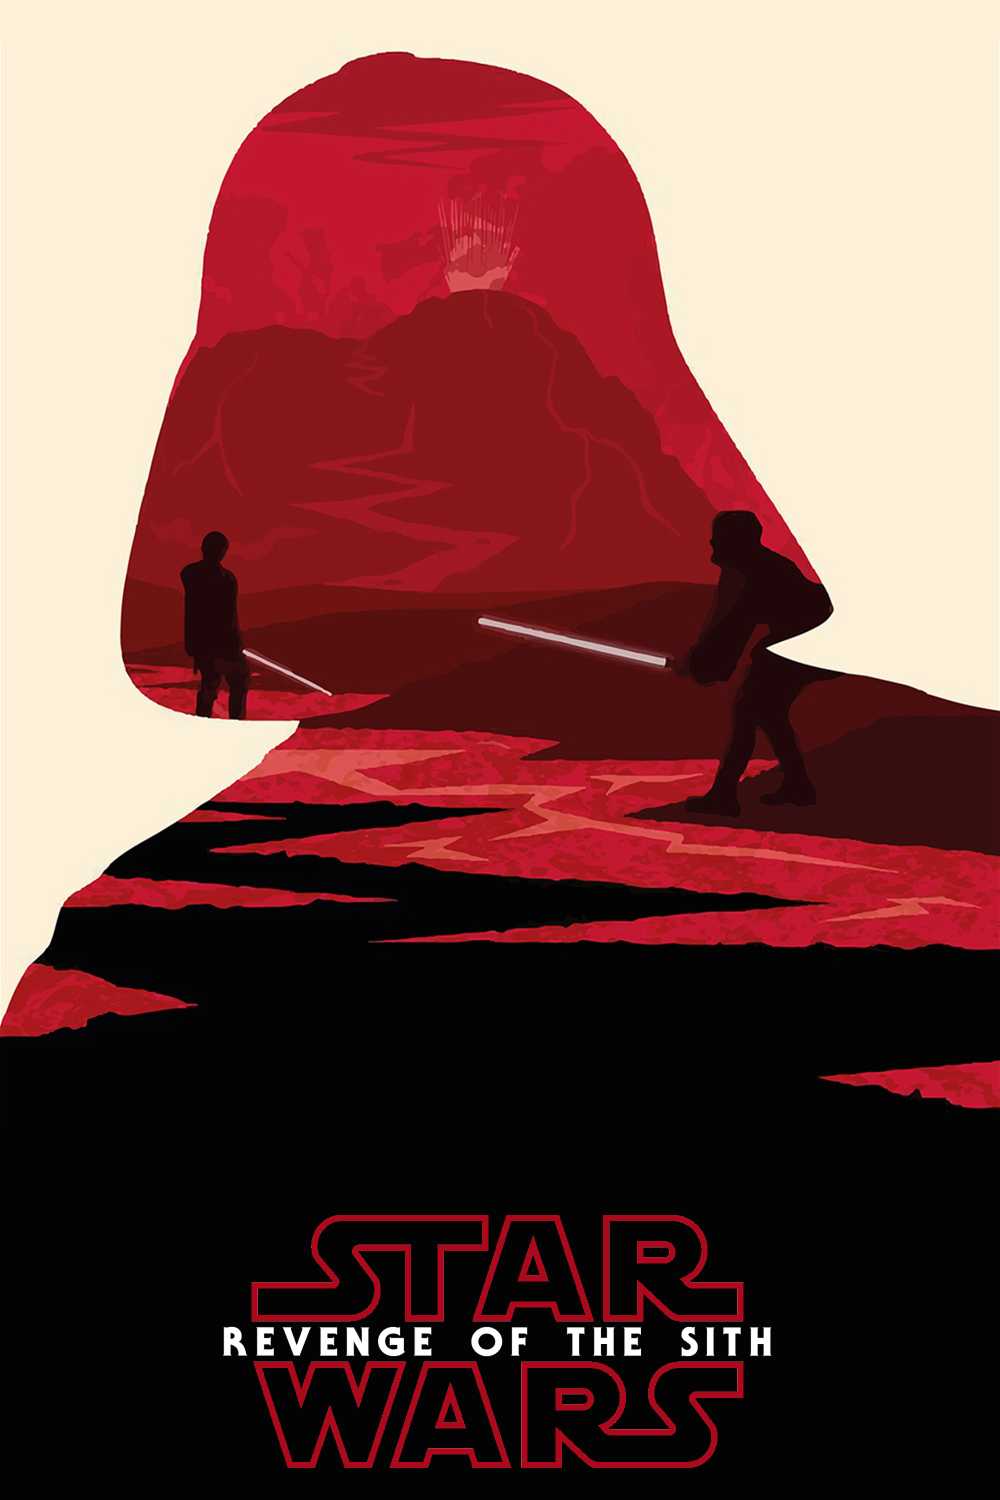 Star Wars Revenge Of The Sith Minimal Art Style Plex Collection Posters